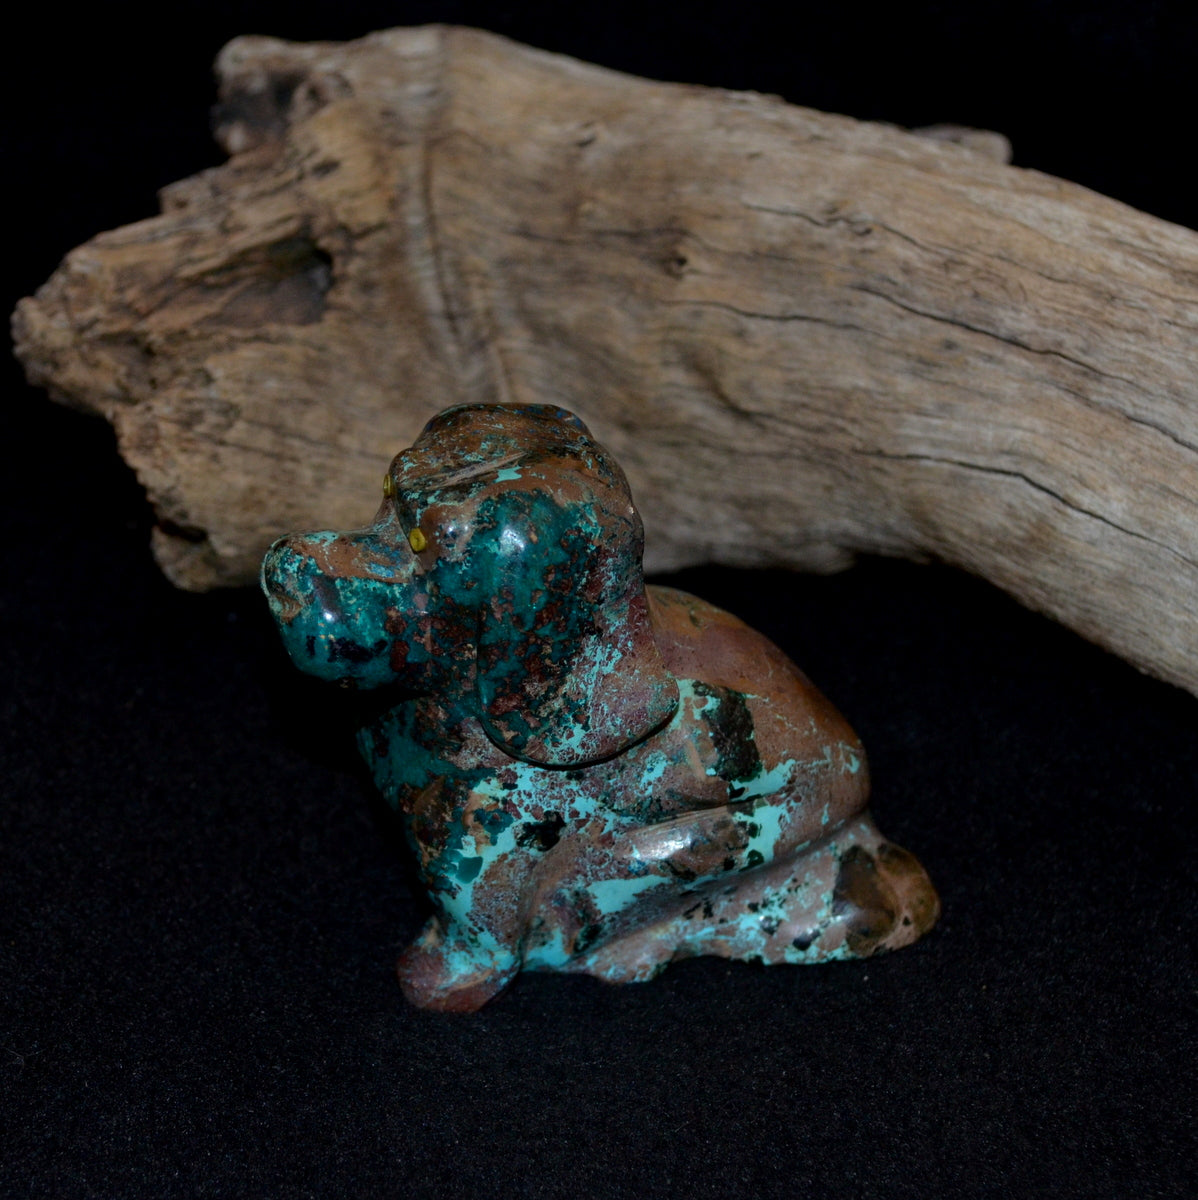 Shattuckite Dioptase Cuprite Chrysocolla Hand Carved Dog - Compassion Humanity Spiritual Protective Grounding - Shop Now at Illiom Crystals - Afterpay Available